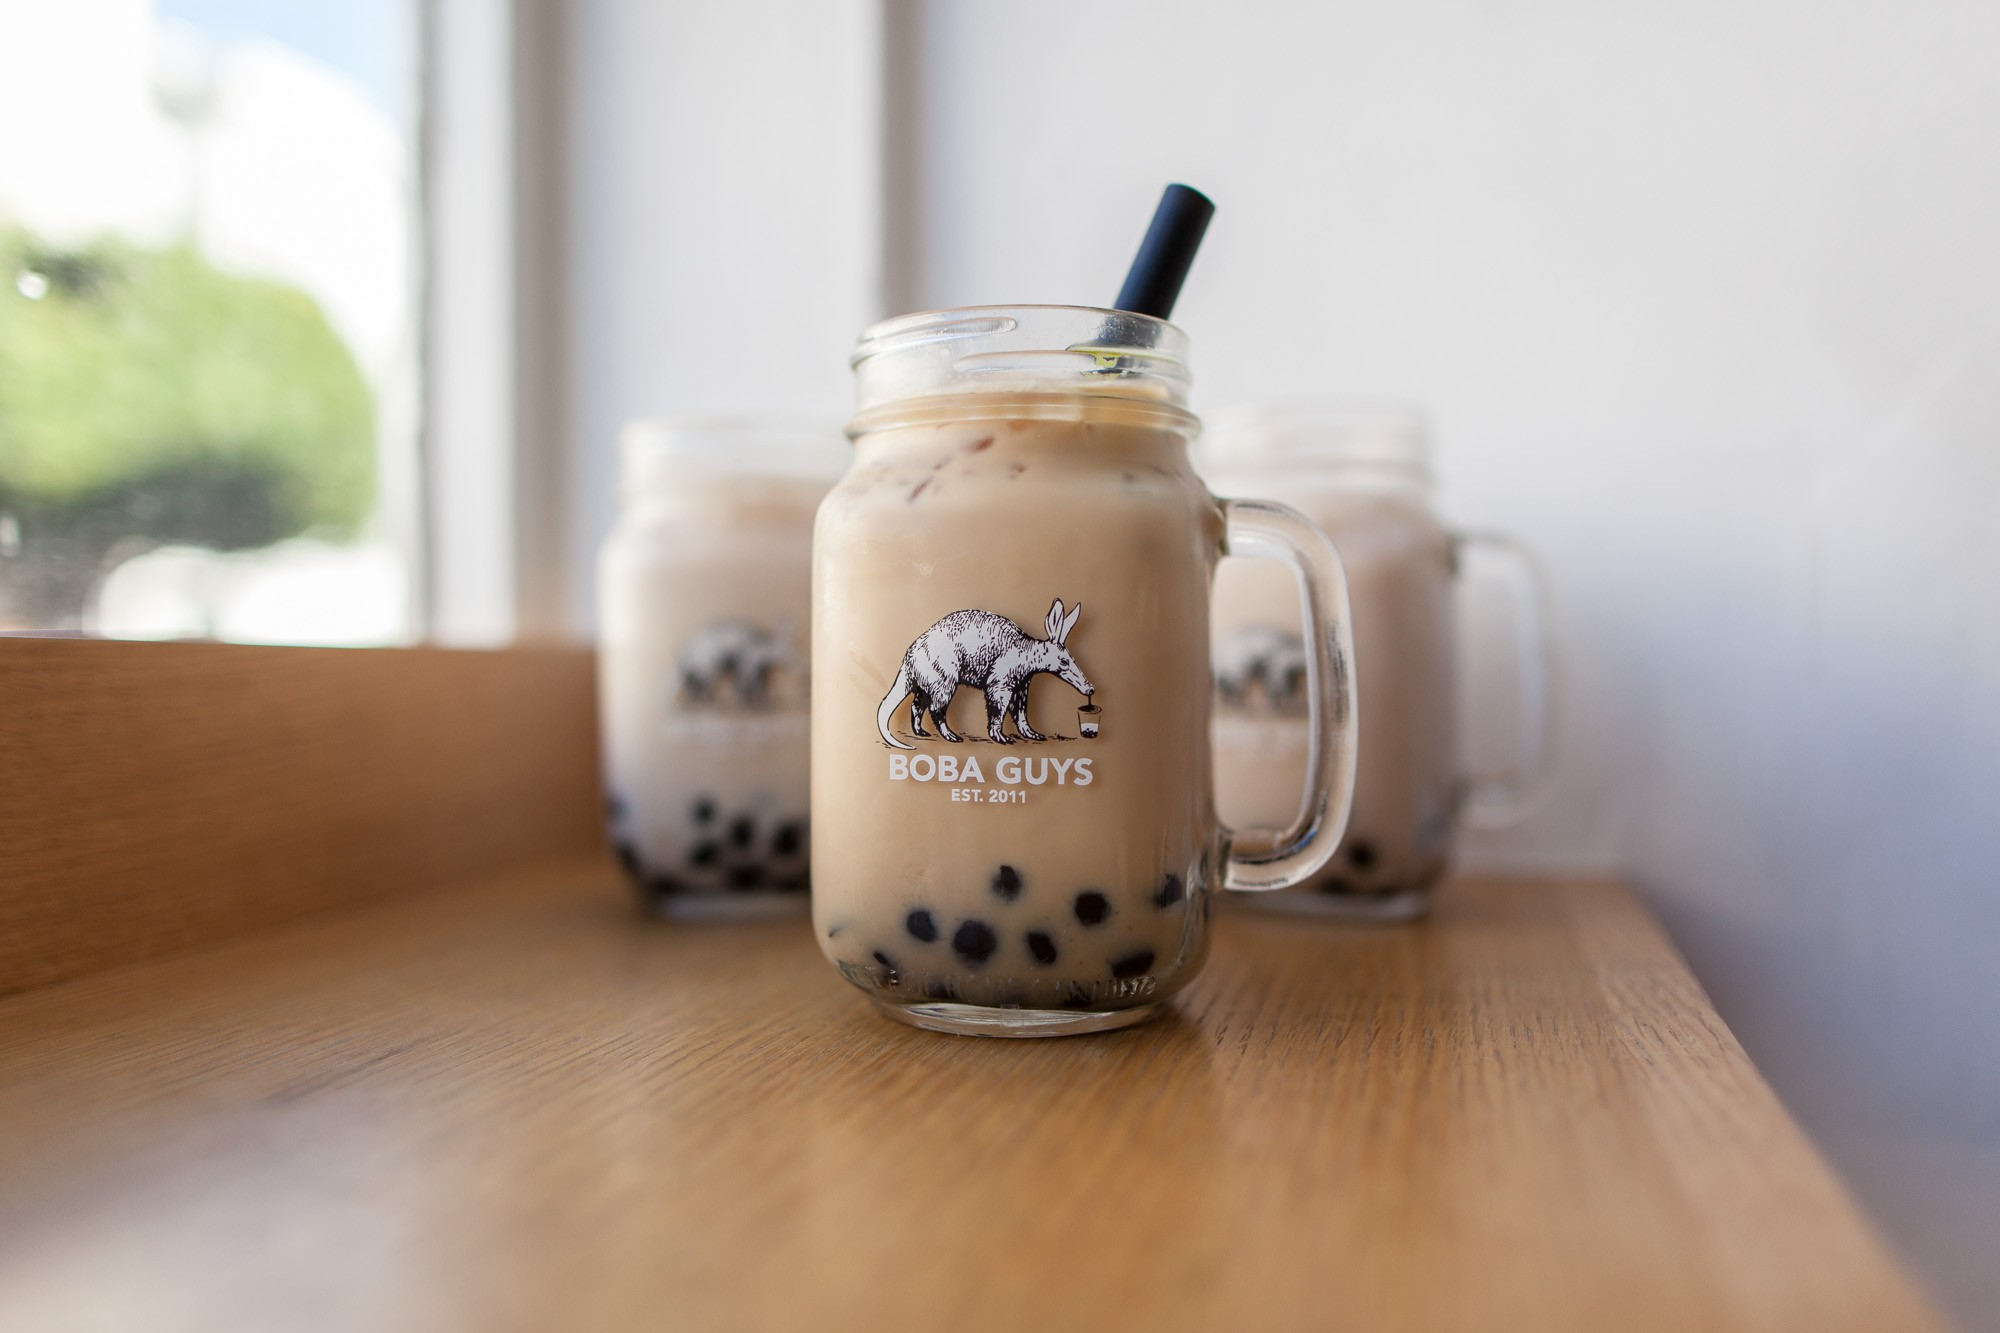 Drinking bubble tea: what's in it, and how can you cut back